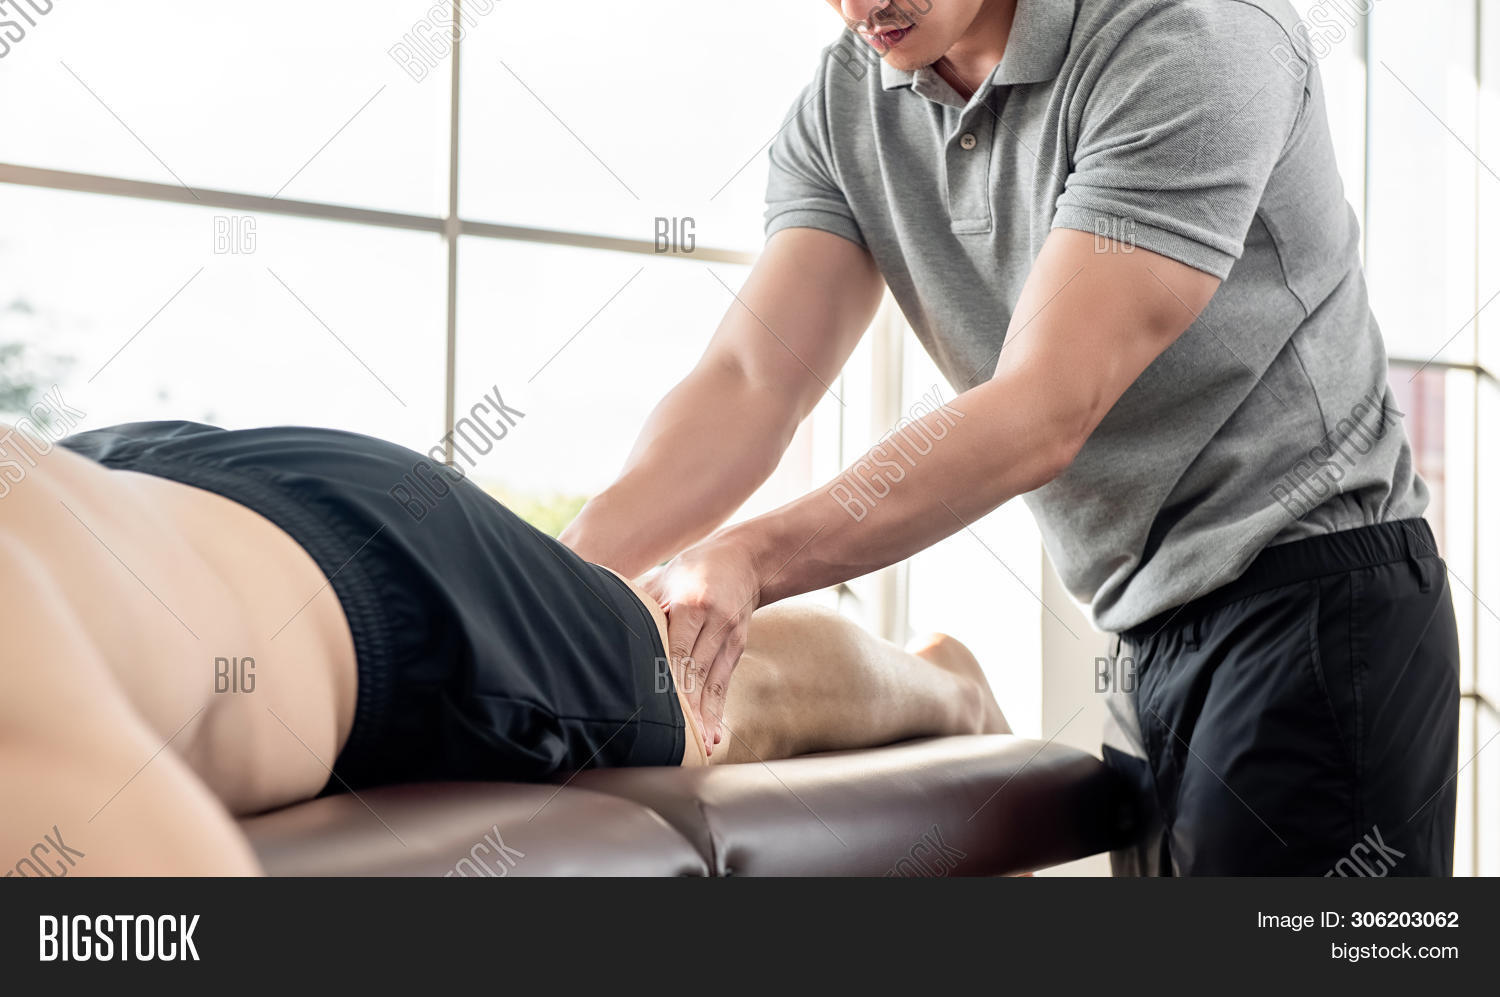 Male Therapist Giving Leg Massage To Athlete Patient On The Bed In Clinic, Sports Physical Therapy C